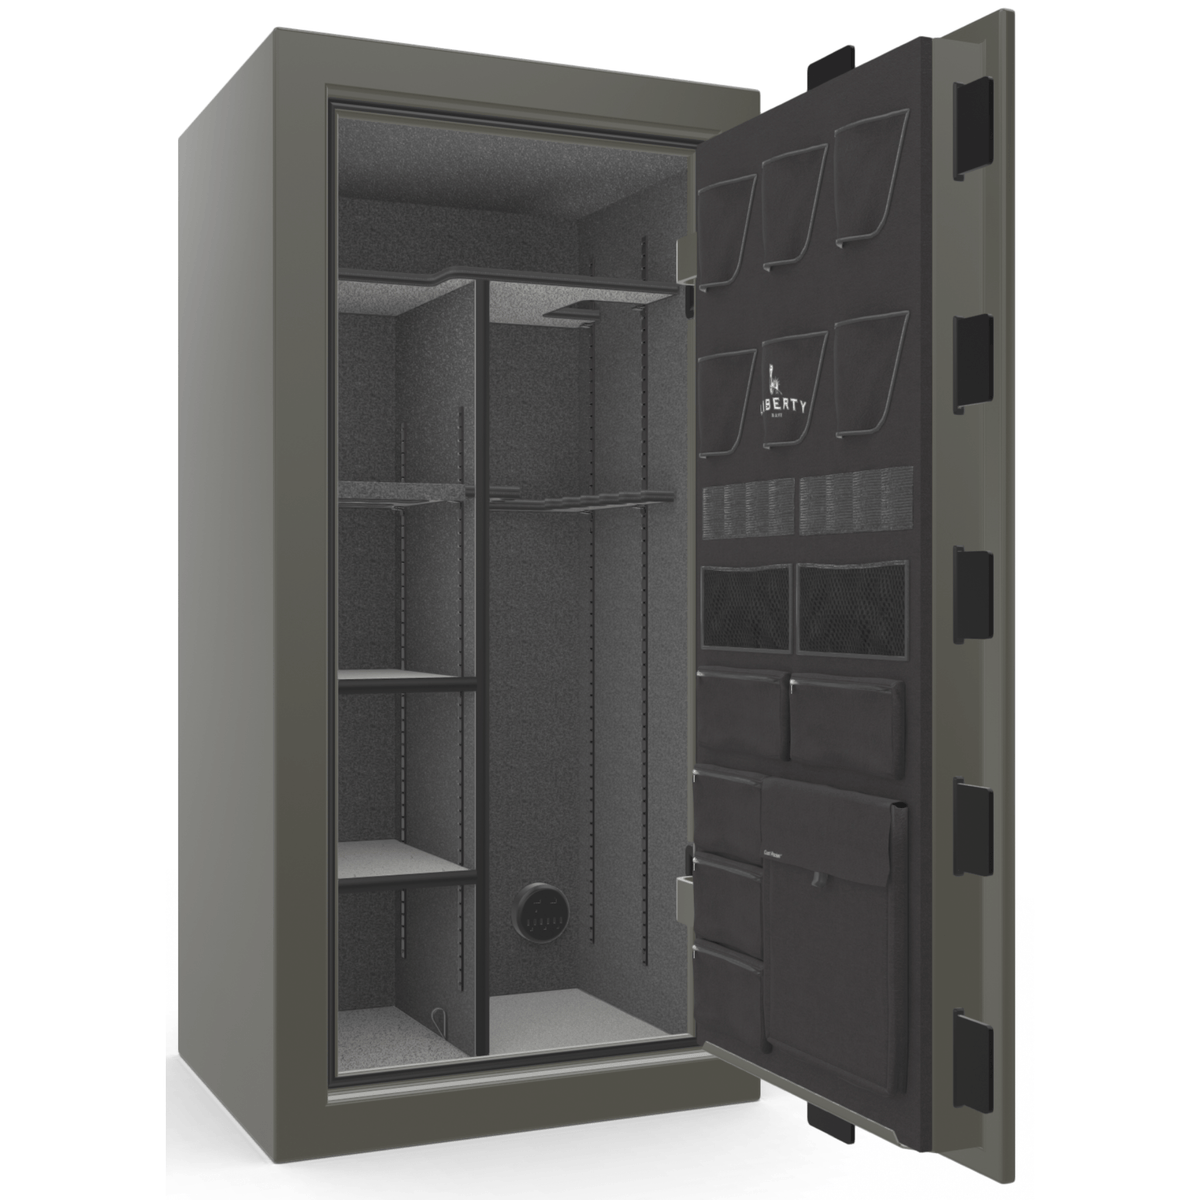 "Franklin | 25 | Level 4 Security | 75 Minute Fire Protection | Gray Gloss | Black Mechanical Lock | 60.5""(H) x 30""(W) x 28.5""(D)"